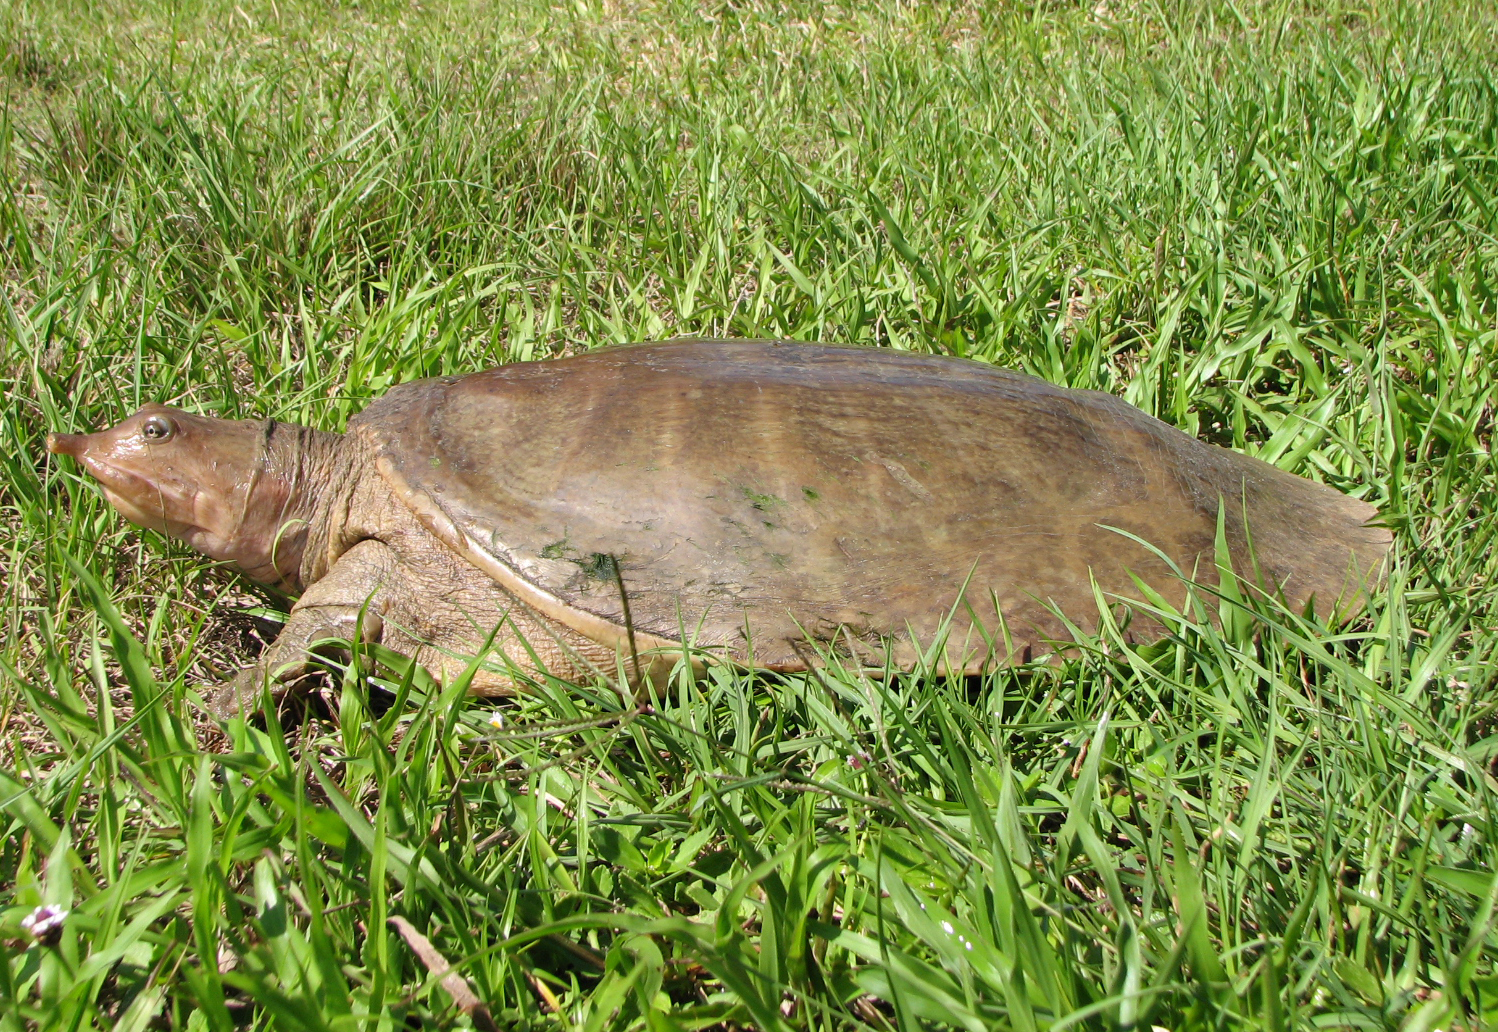 Image of Florida Softshell Turtle